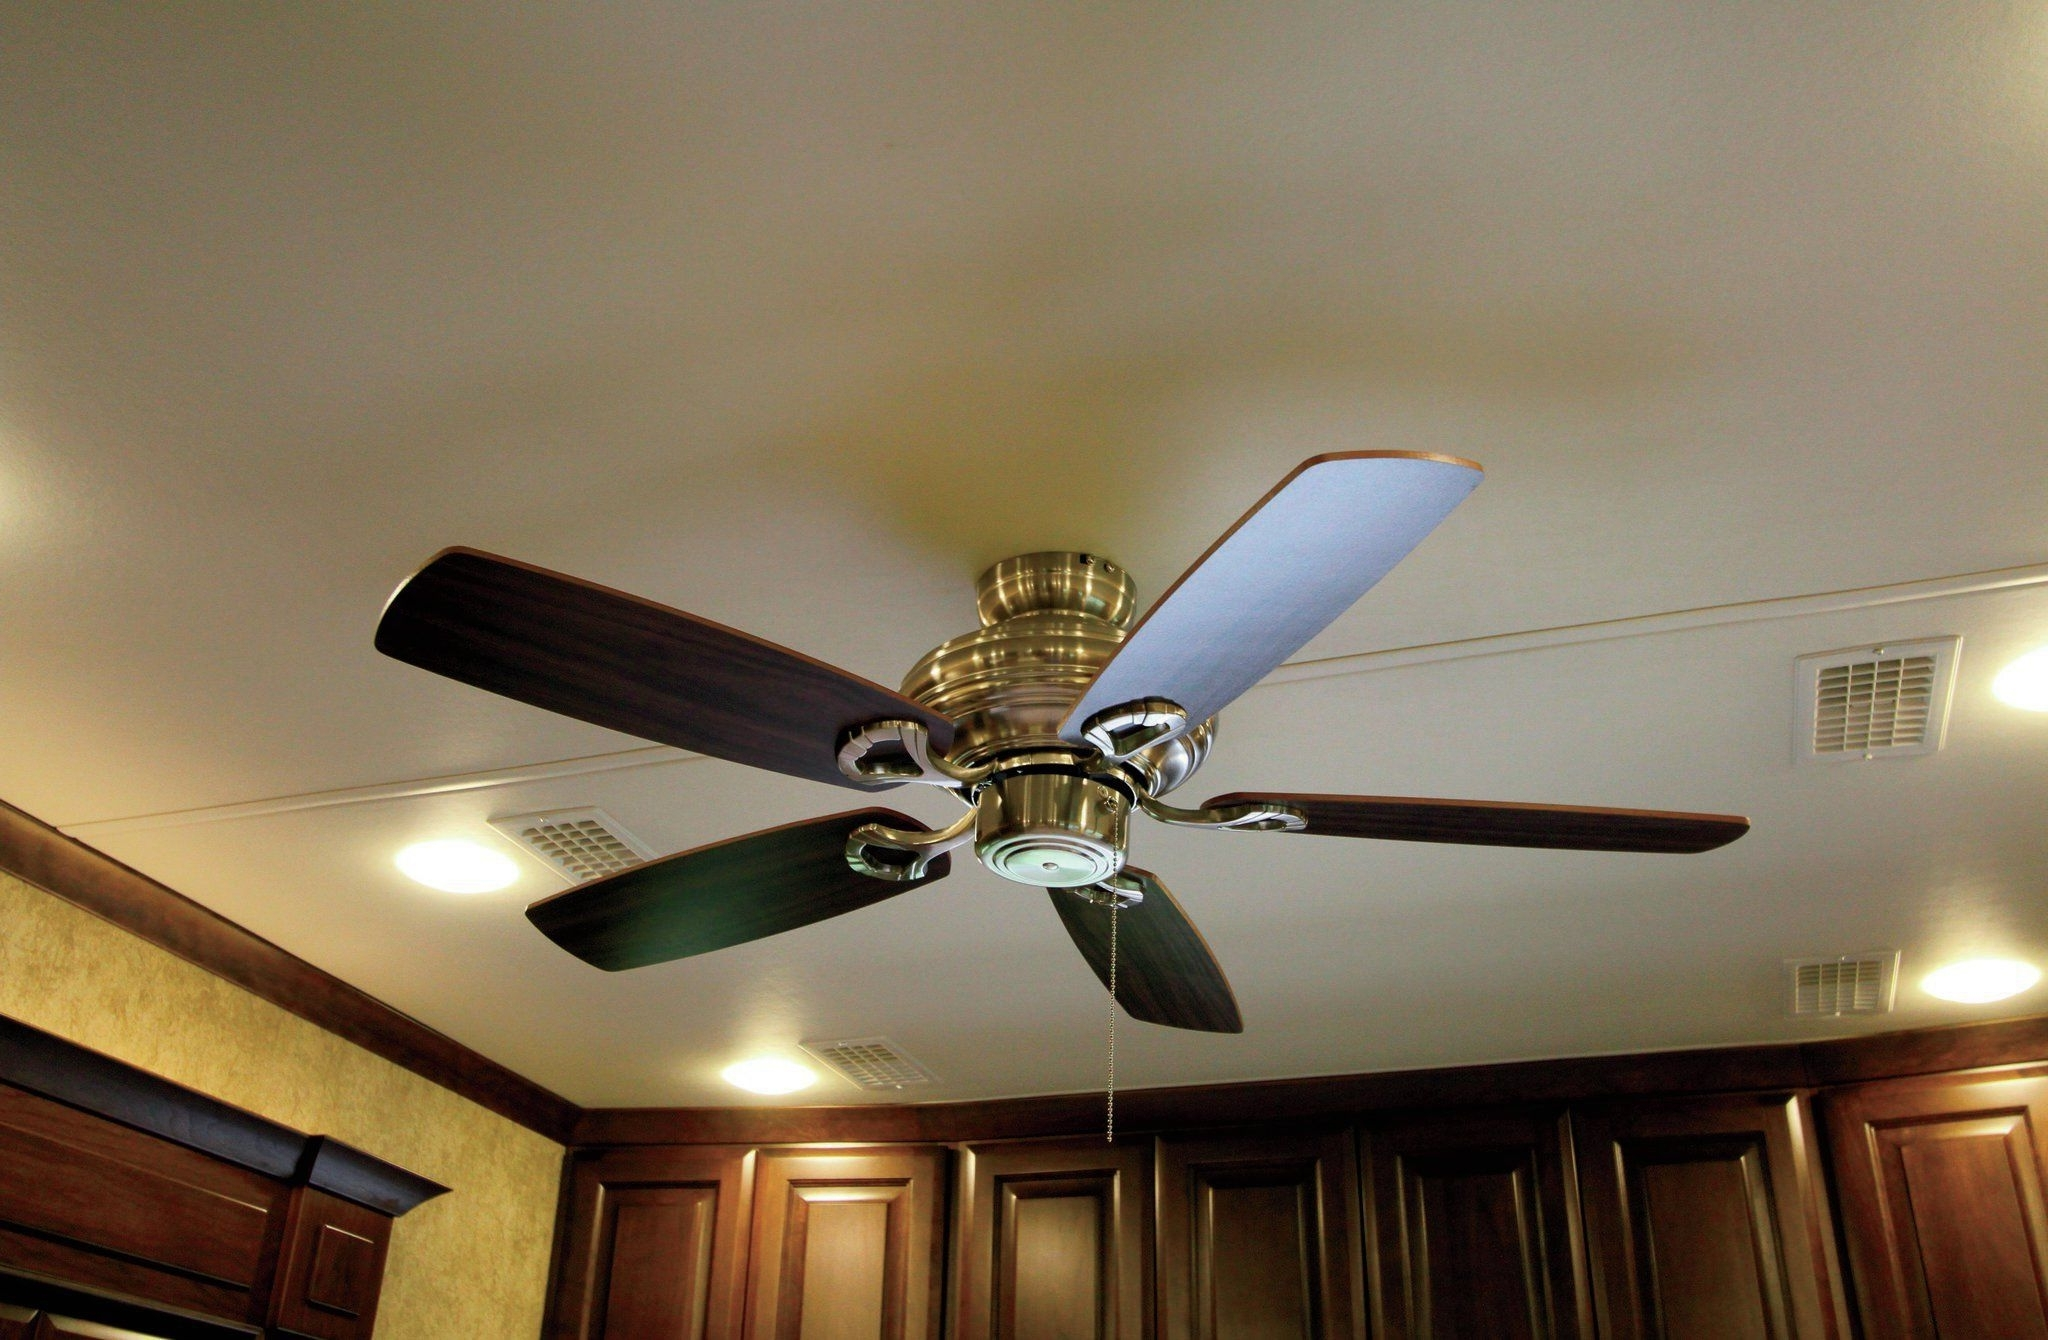 44 Inch Outdoor Ceiling Fans With Lights Within Most Current Bedroom Bedroom Ceiling Fans With Remote 44 Inch Outdoor Ceiling (View 20 of 20)